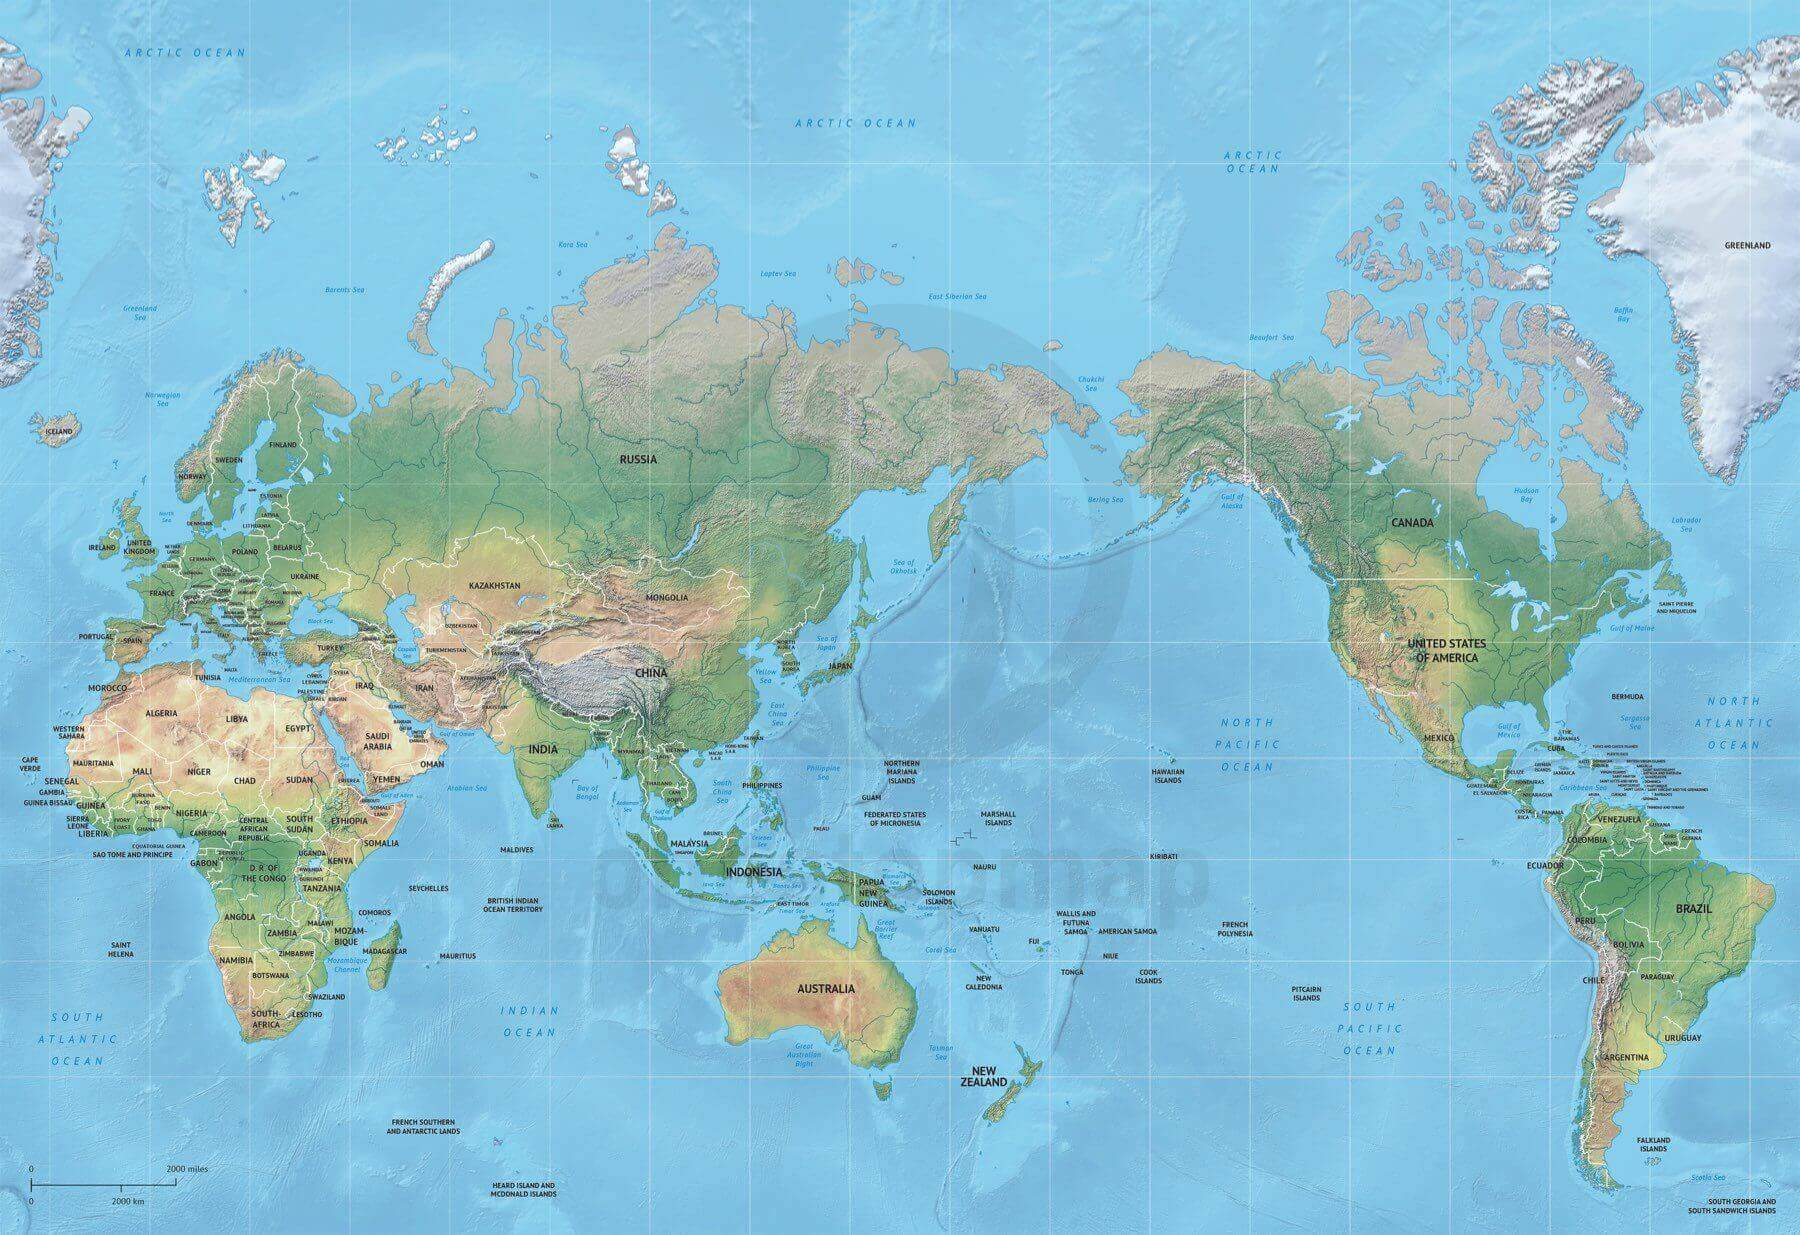 Vector map world relief mercator asia australia one stop map 222 world political shaded relief mercator asia australia map of world political gumiabroncs Image collections